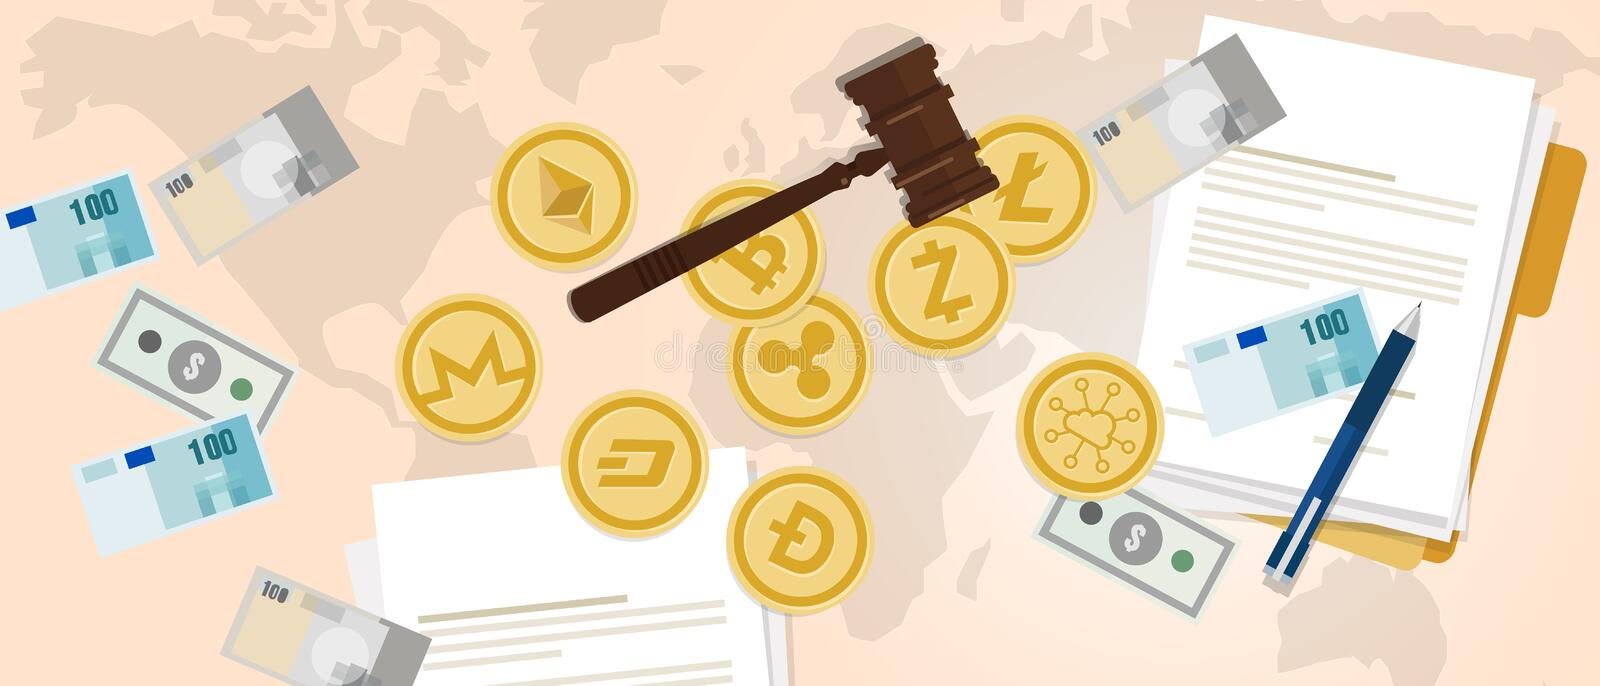 Law legal aspect of crypto-currency coin set bitcoin digital currency royalty free illustration